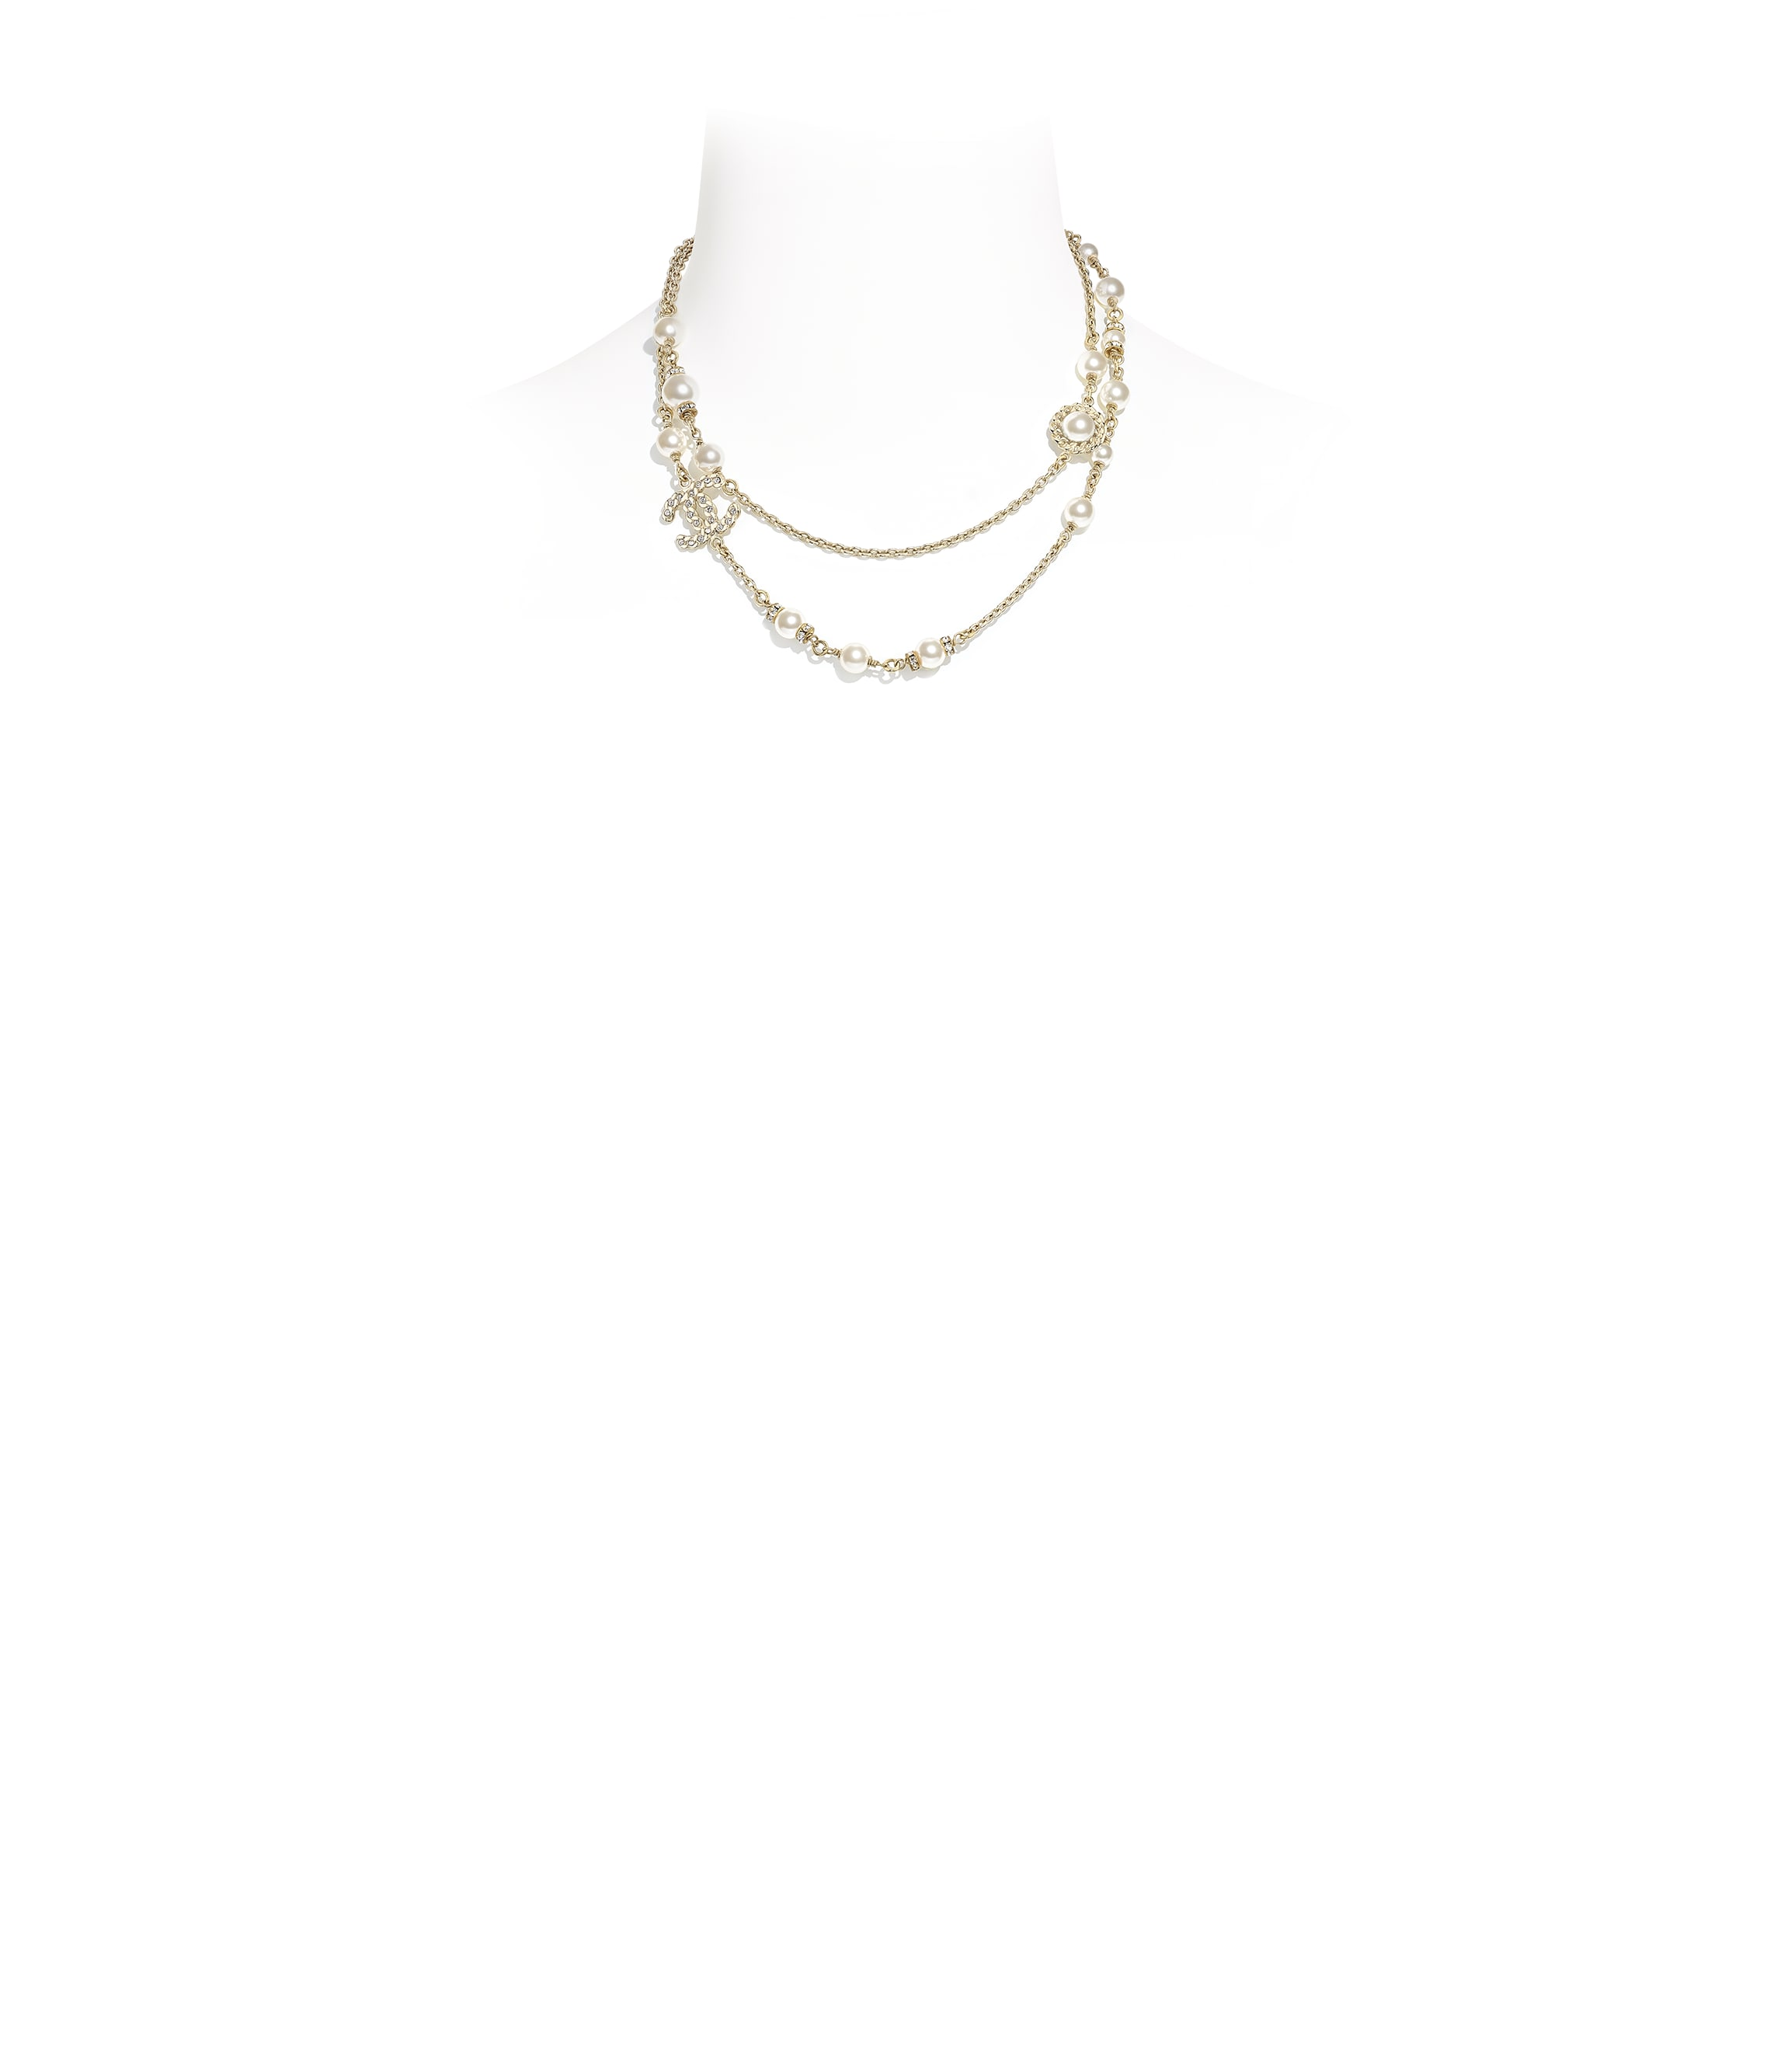 chanel costume jewelry necklace